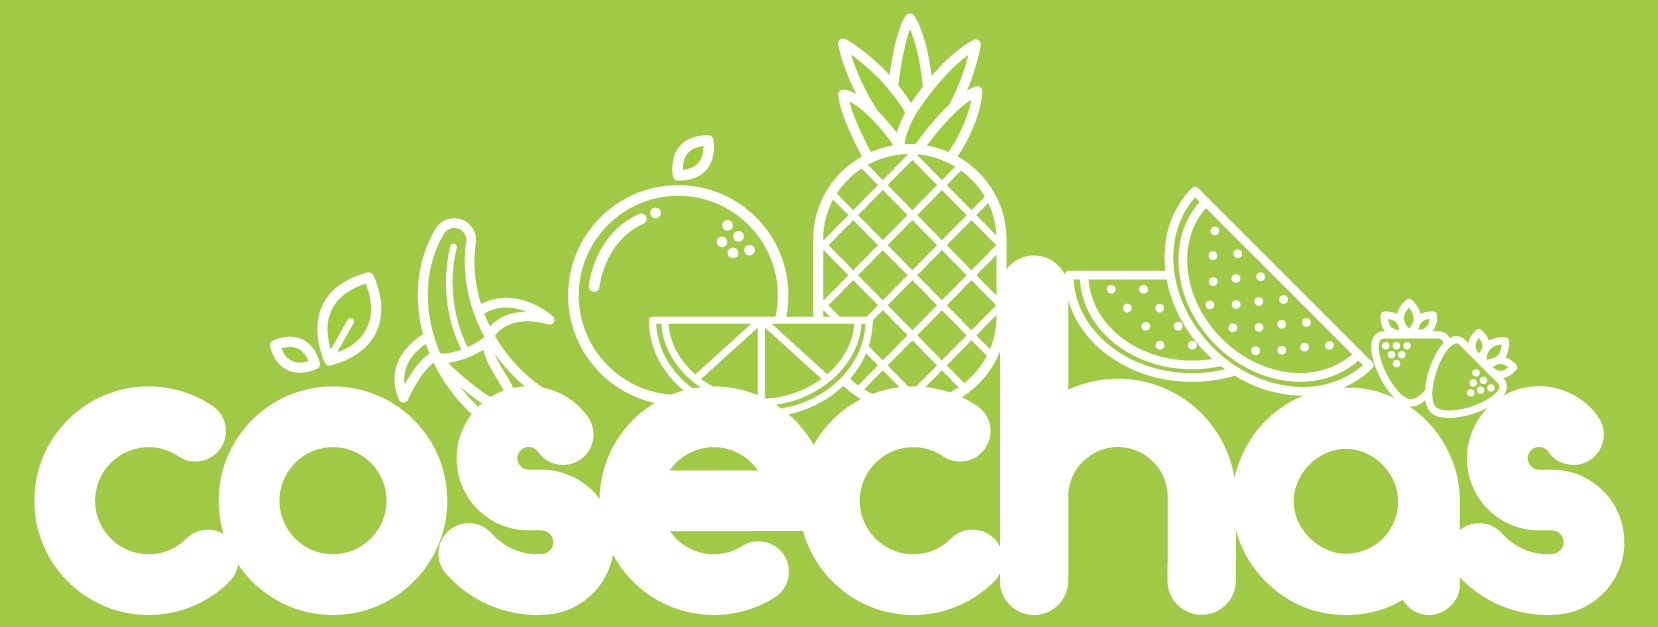 Cosechas Smoothies Coming Soon to Shoppes at South Orange Ave